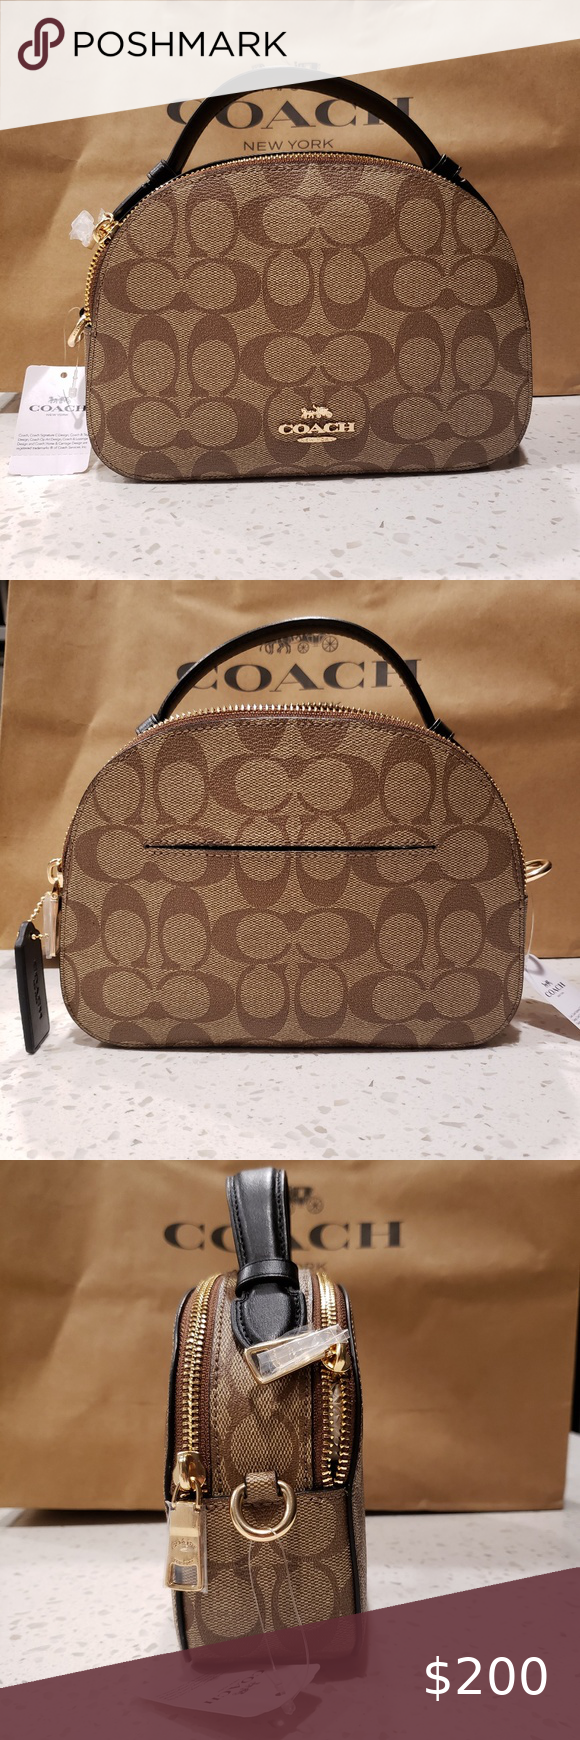 Coach Serena Satchel In Signature Canvas Signature coated canvas and smooth leat…